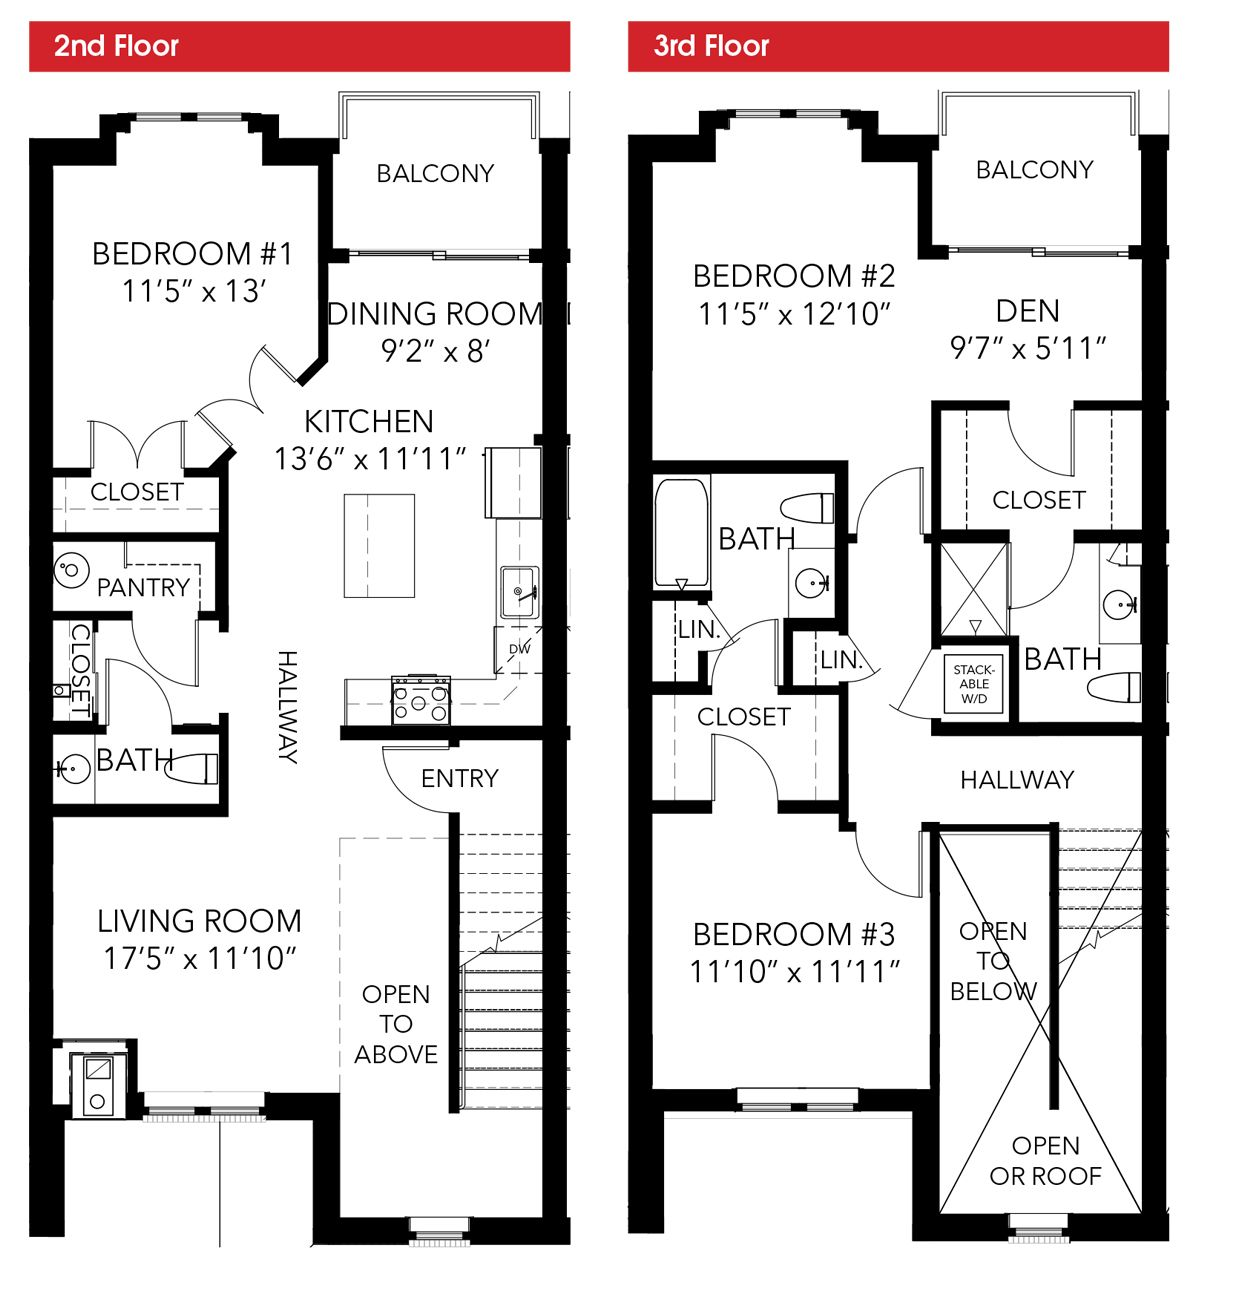 Oakbourne floor plan 3 bedroom 2 story leed certified for Duplex layout plan